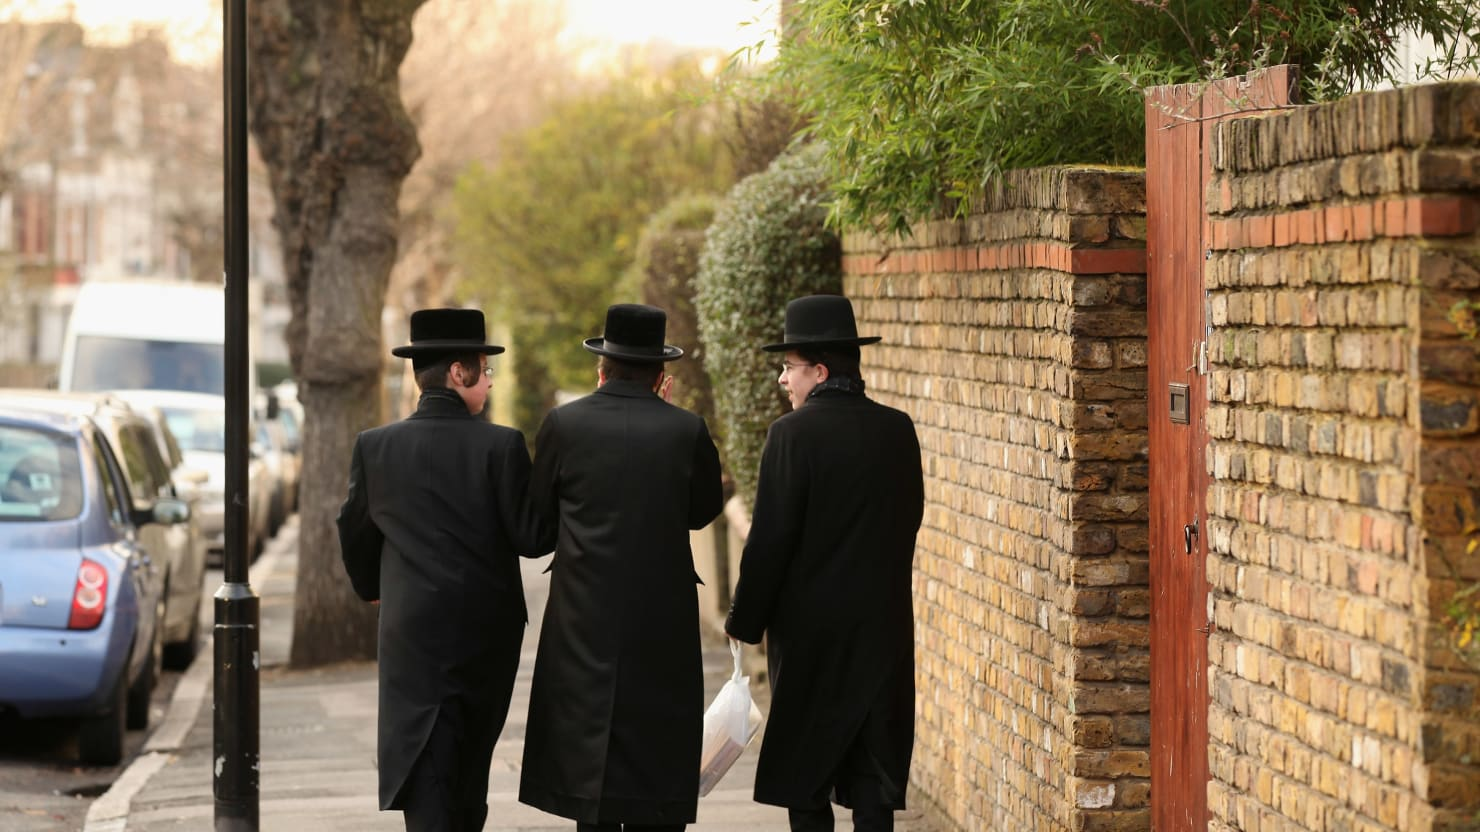 trafalgar jewish single men If you're a solo traveler, you can now enjoy a 50-100% discount on our standard single supplements on selected trip departures see how much you could save with the below featured itineraries.